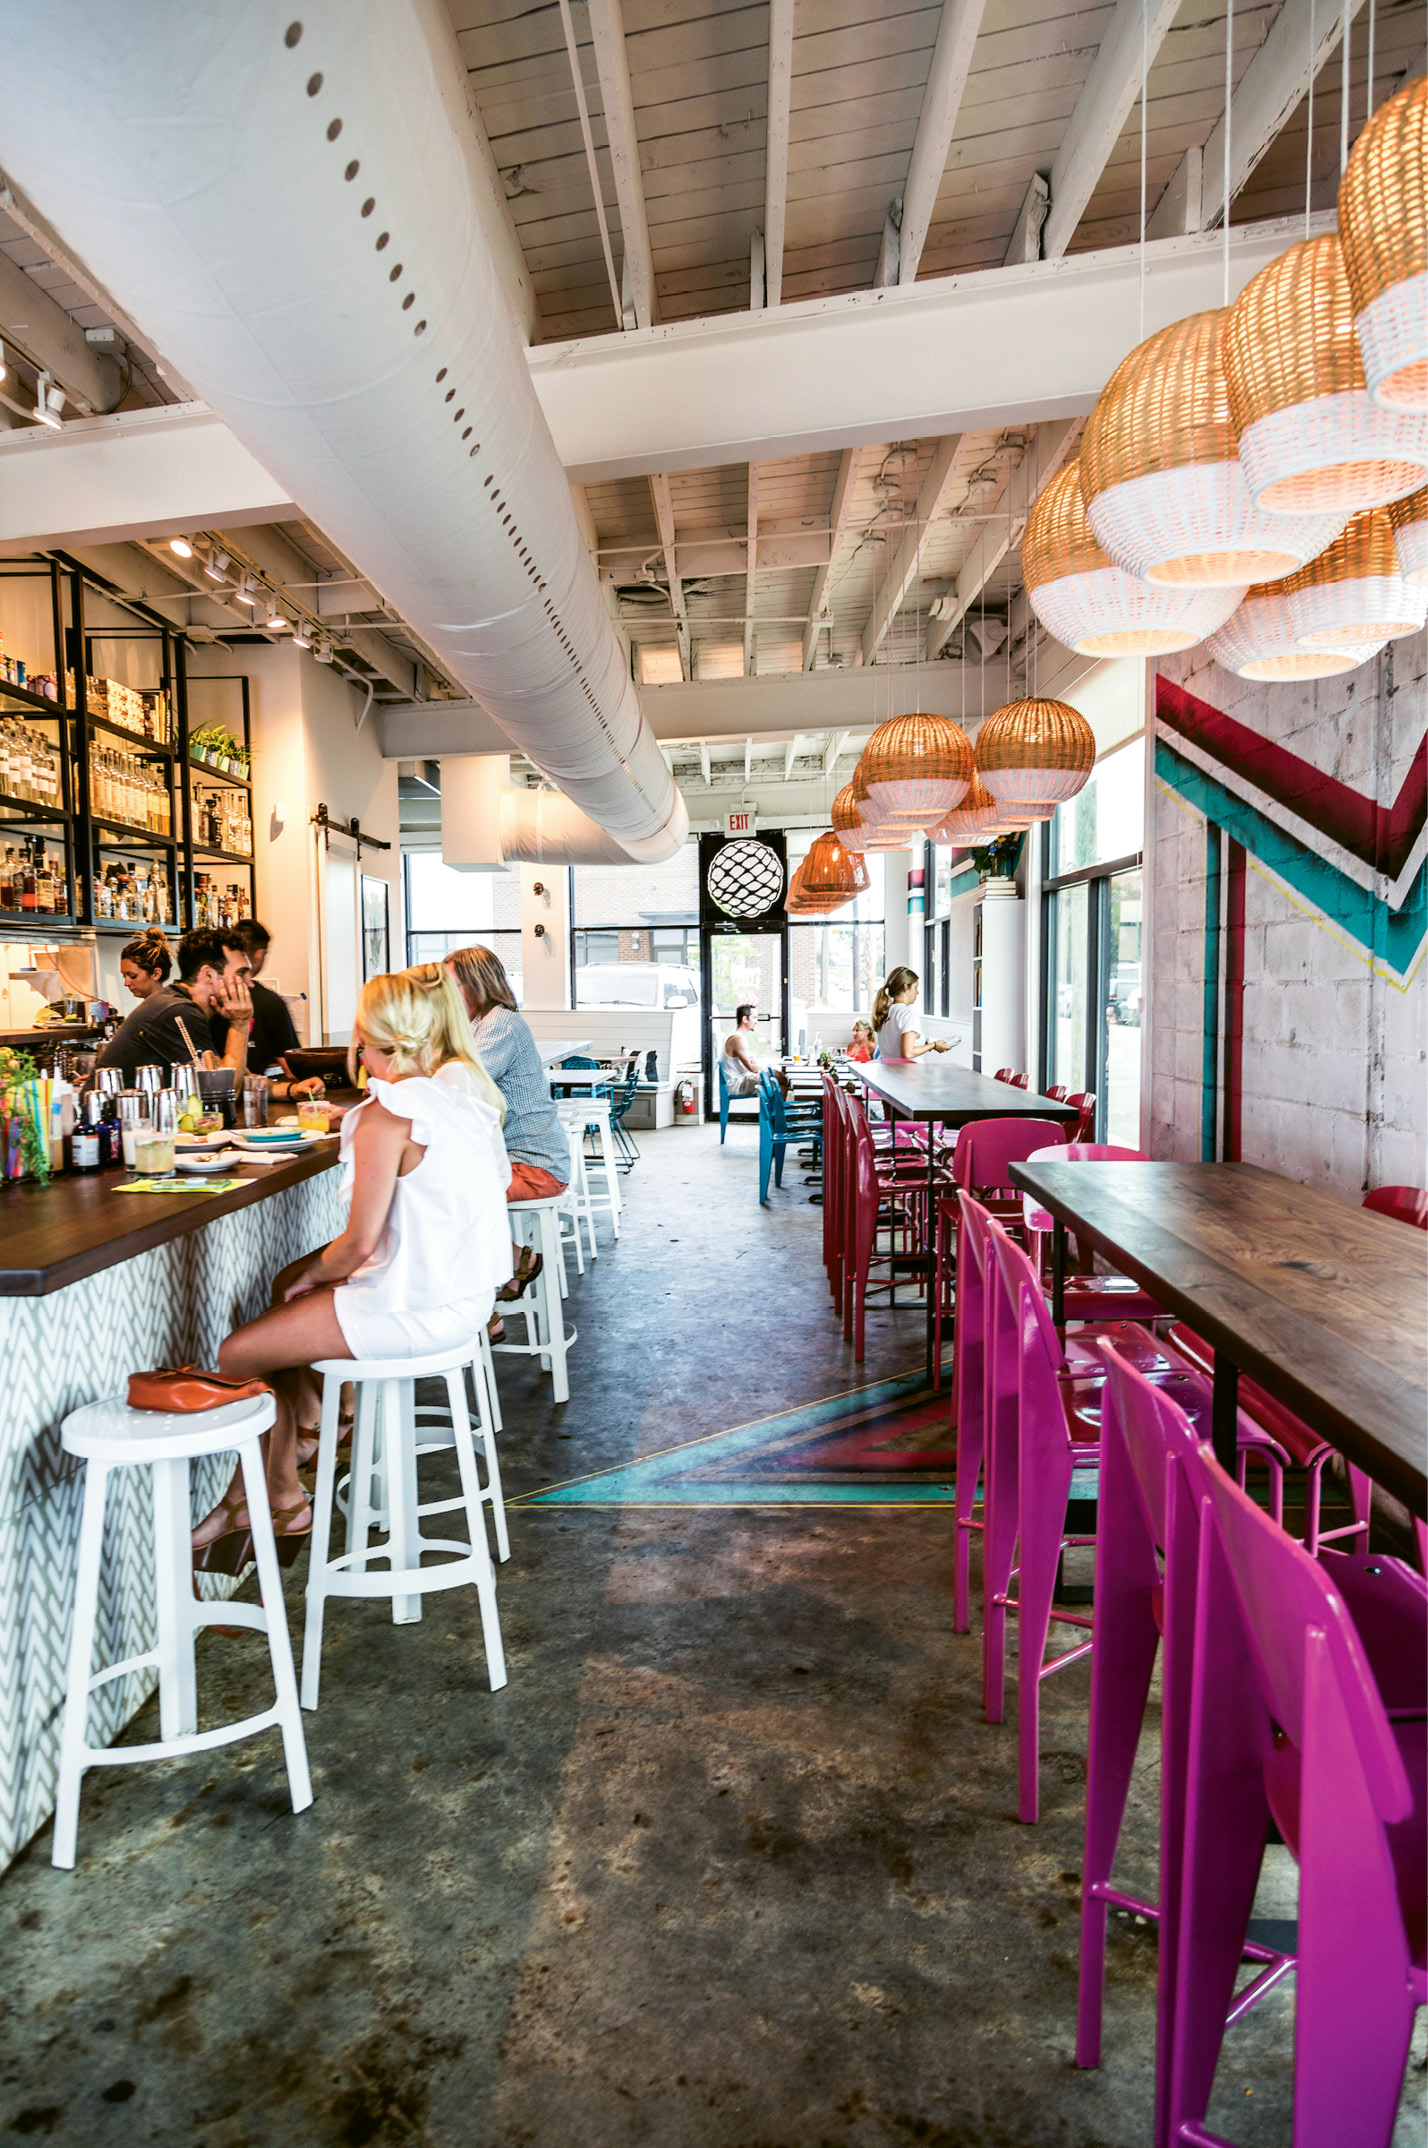 FIESTA FEEL: Housed in the former Zappo's Pizza spot on King Street, Pancito & Lefty may not call attention to itself from the sidewalk, but bright interior walls popping with magenta and teal put diners in a lively mood. At the counter, bartenders mix smoky mezcal-based cocktails and margaritas.